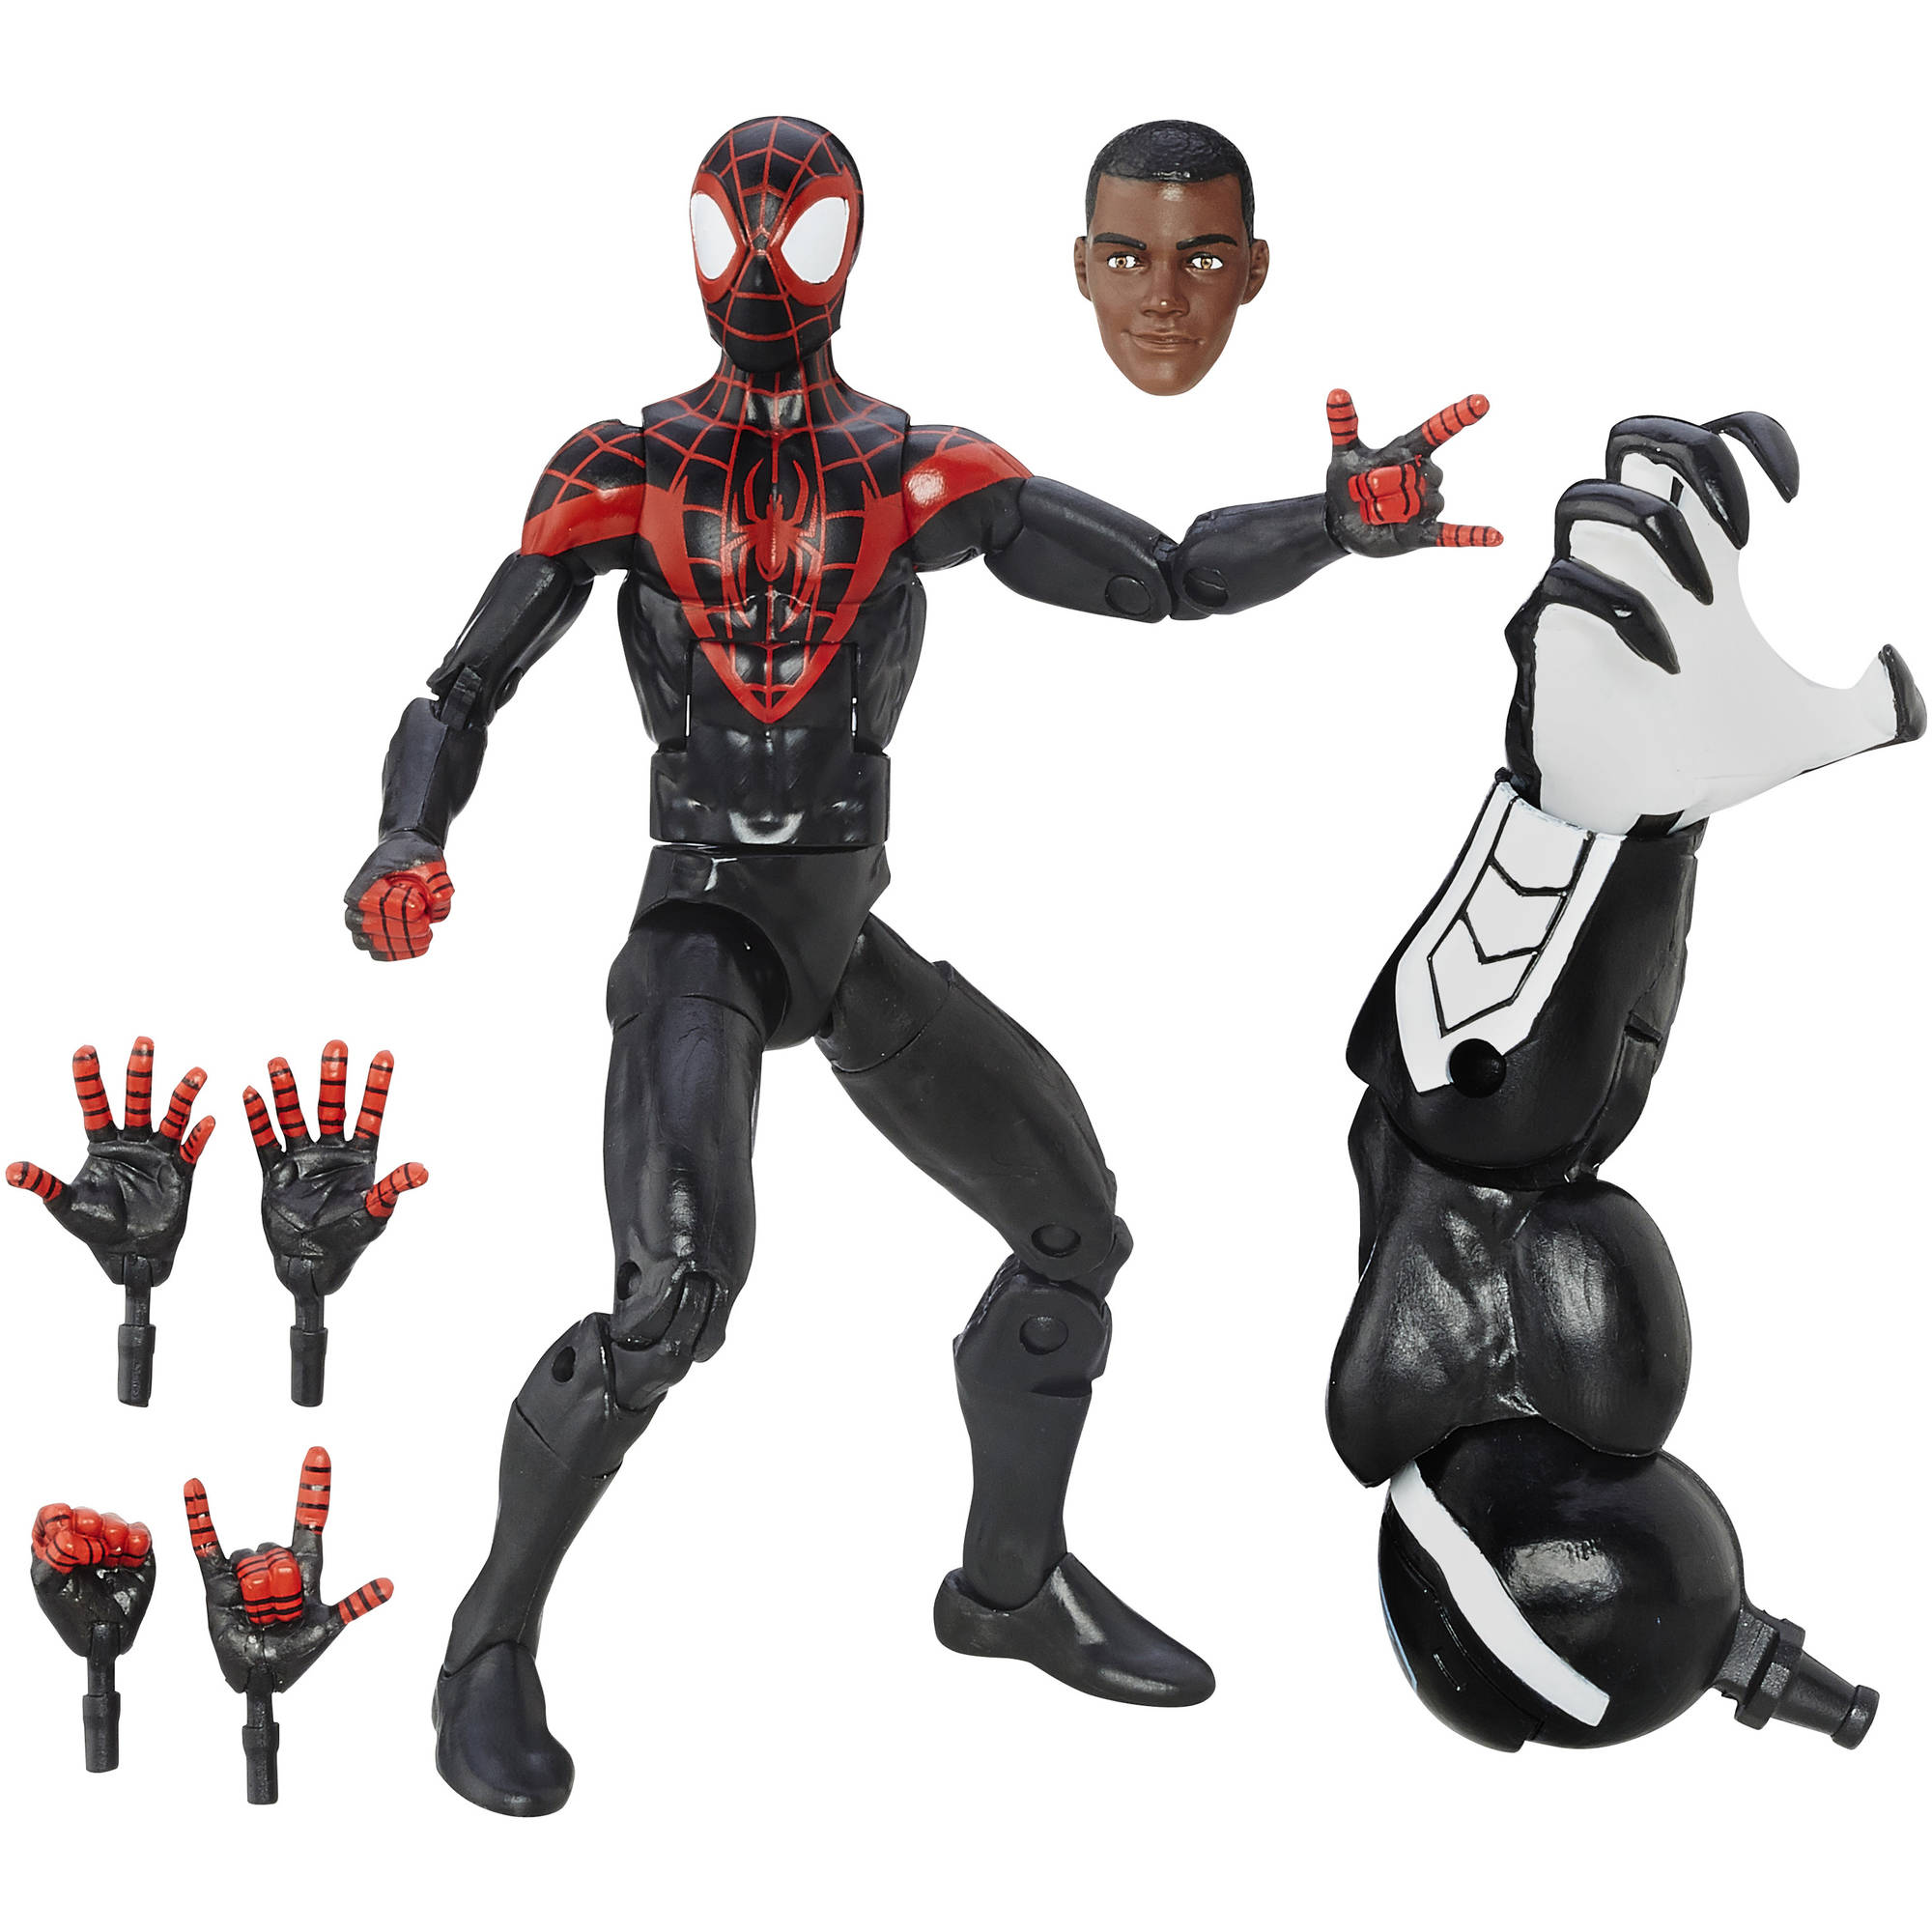 spider miles Ultimate morales man